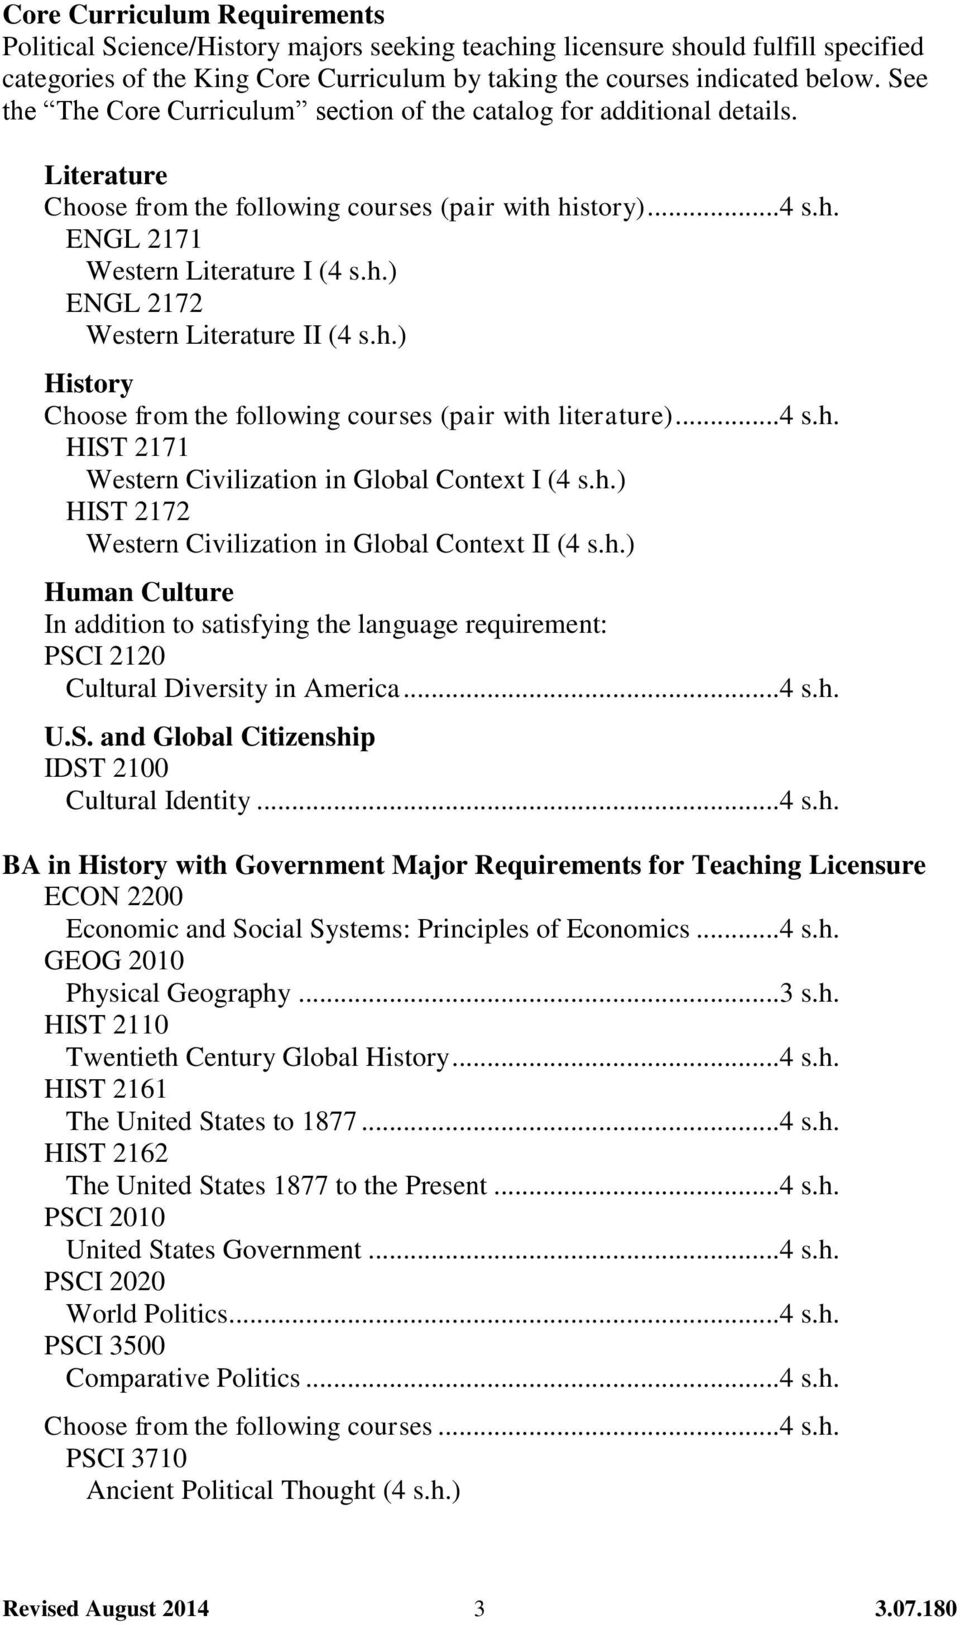 h.) History Choose from the following courses (pair with literature)... 4 s.h. HIST 2171 Western Civilization in Global Context I (4 s.h.) HIST 2172 Western Civilization in Global Context II (4 s.h.) Human Culture In addition to satisfying the language requirement: PSCI 2120 Cultural Diversity in America.